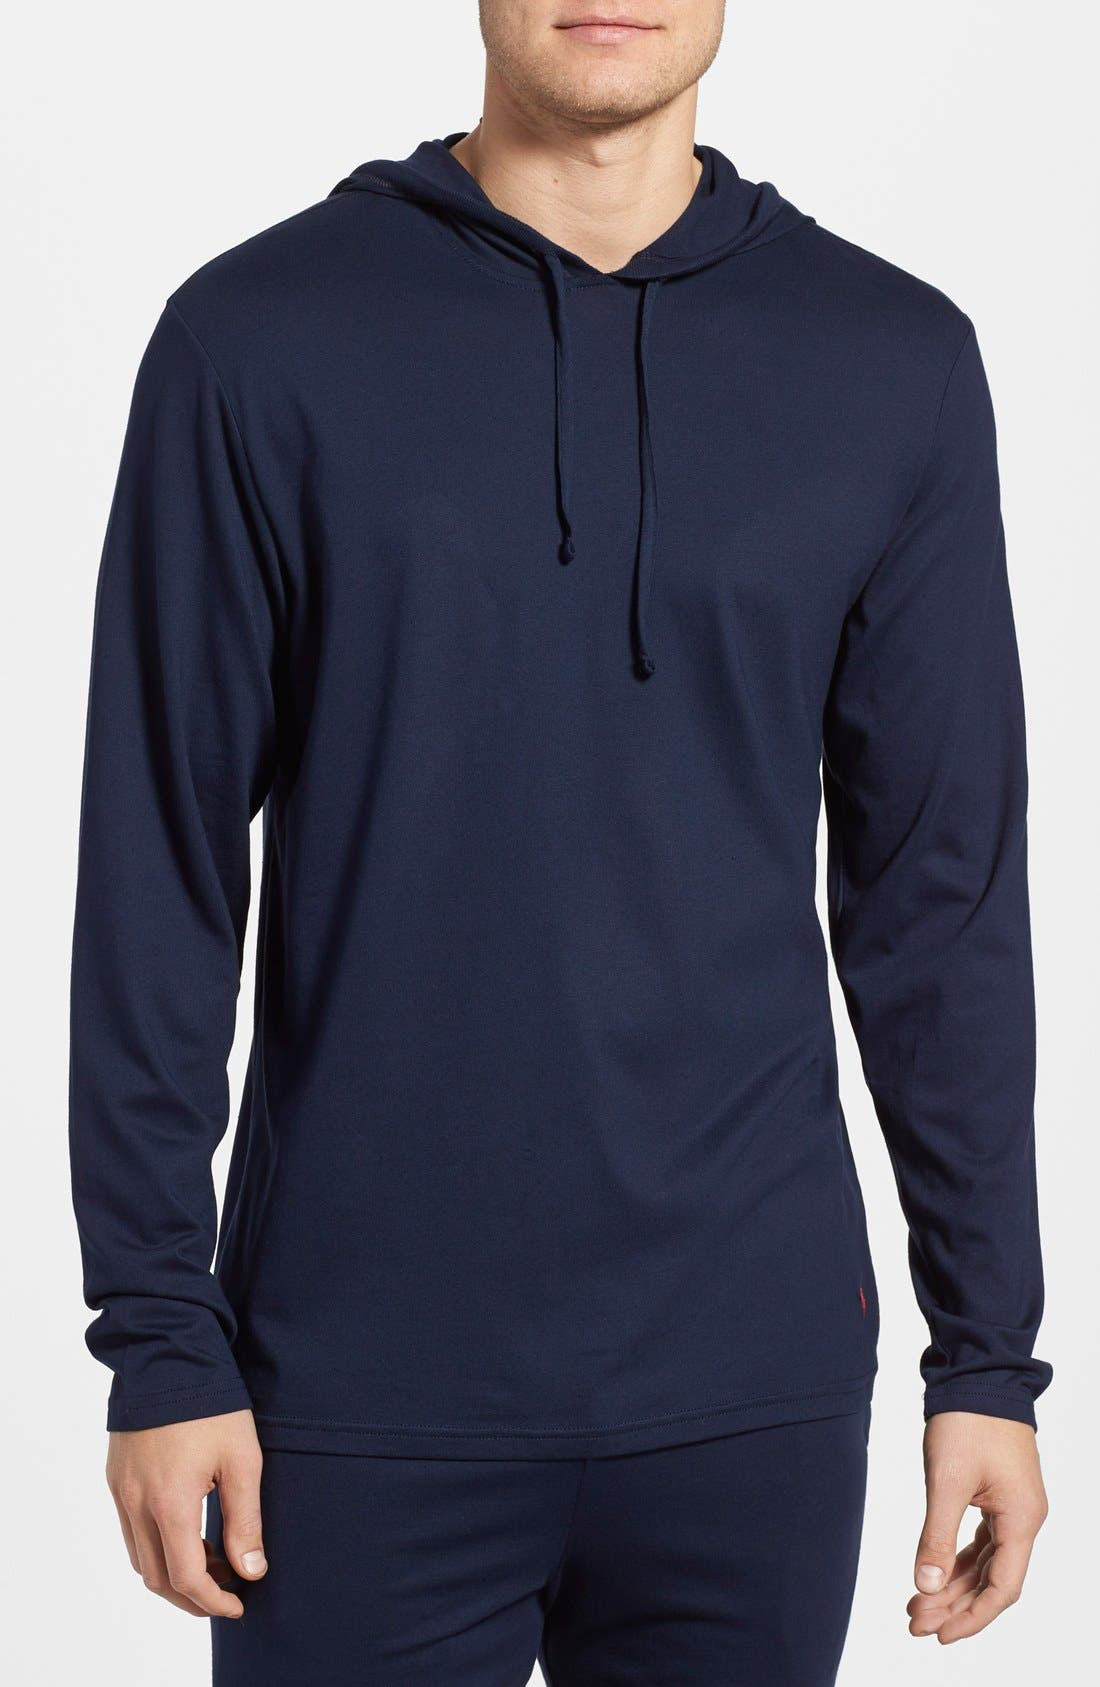 cheap ralph lauren sweatshirts